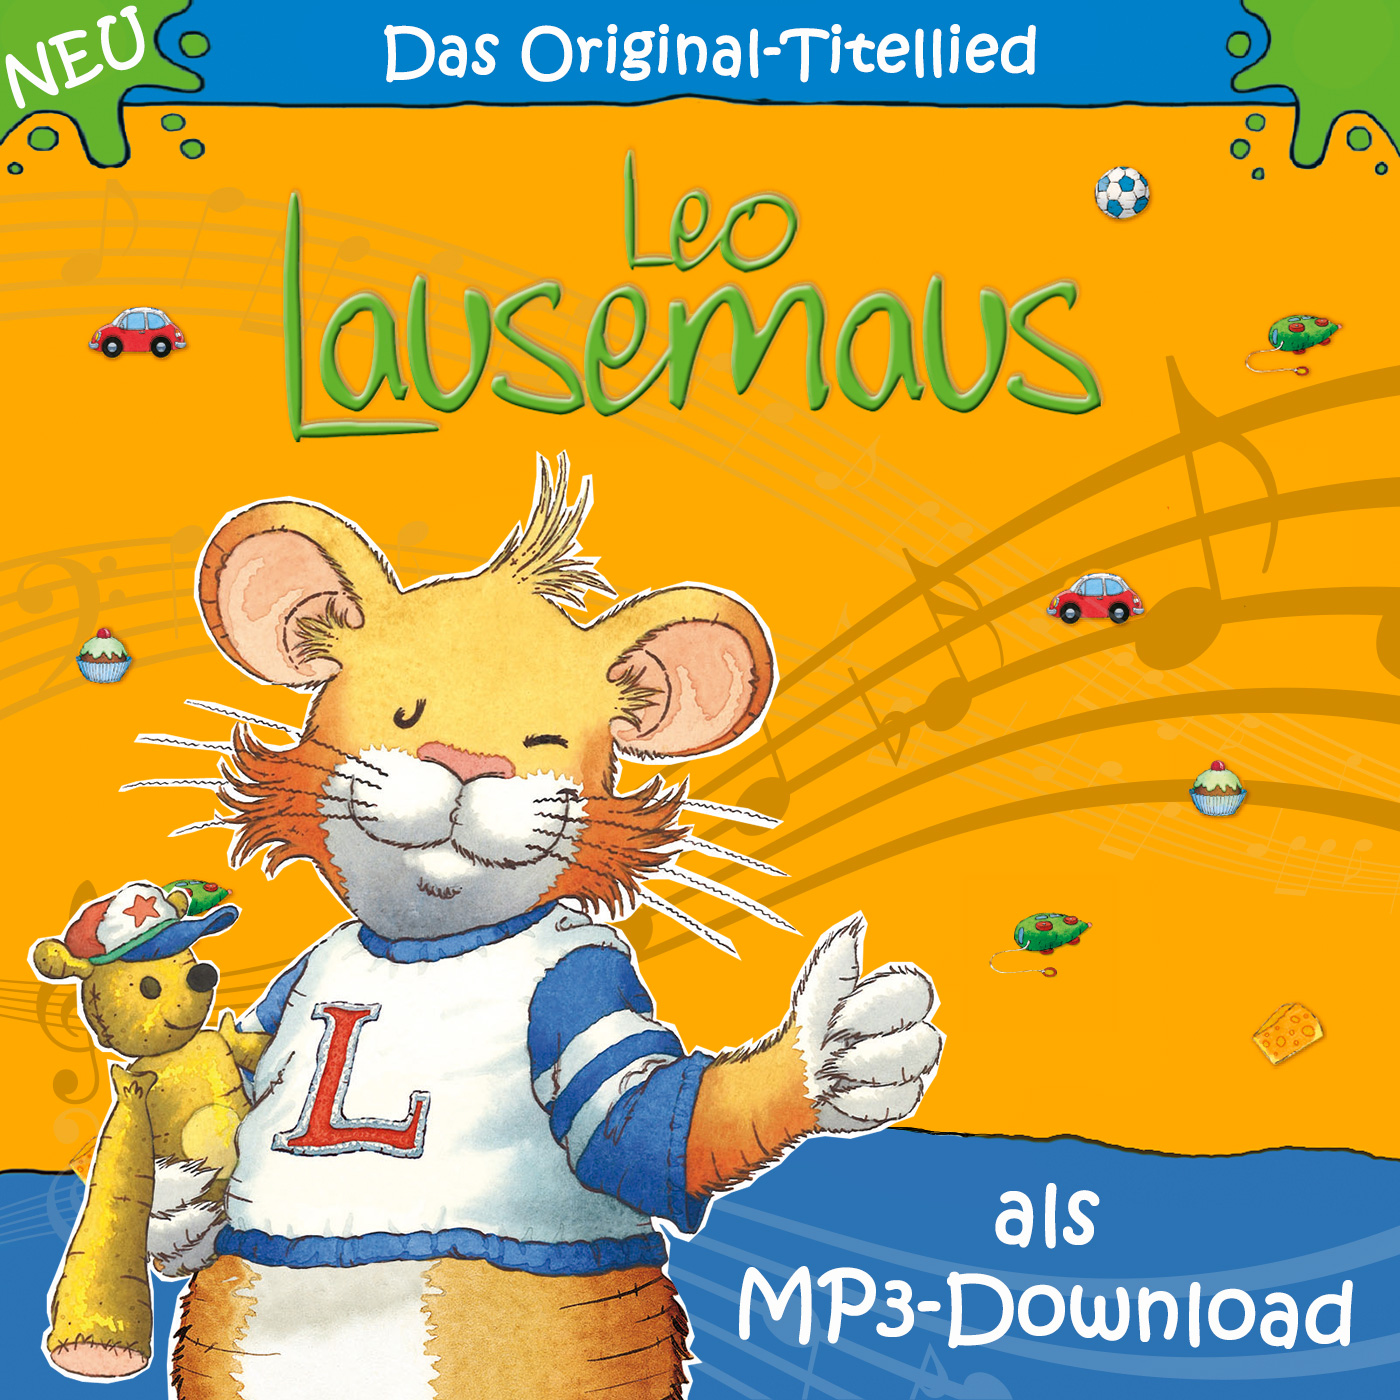 Leo Lausemaus: Titellied (MP3-Download)